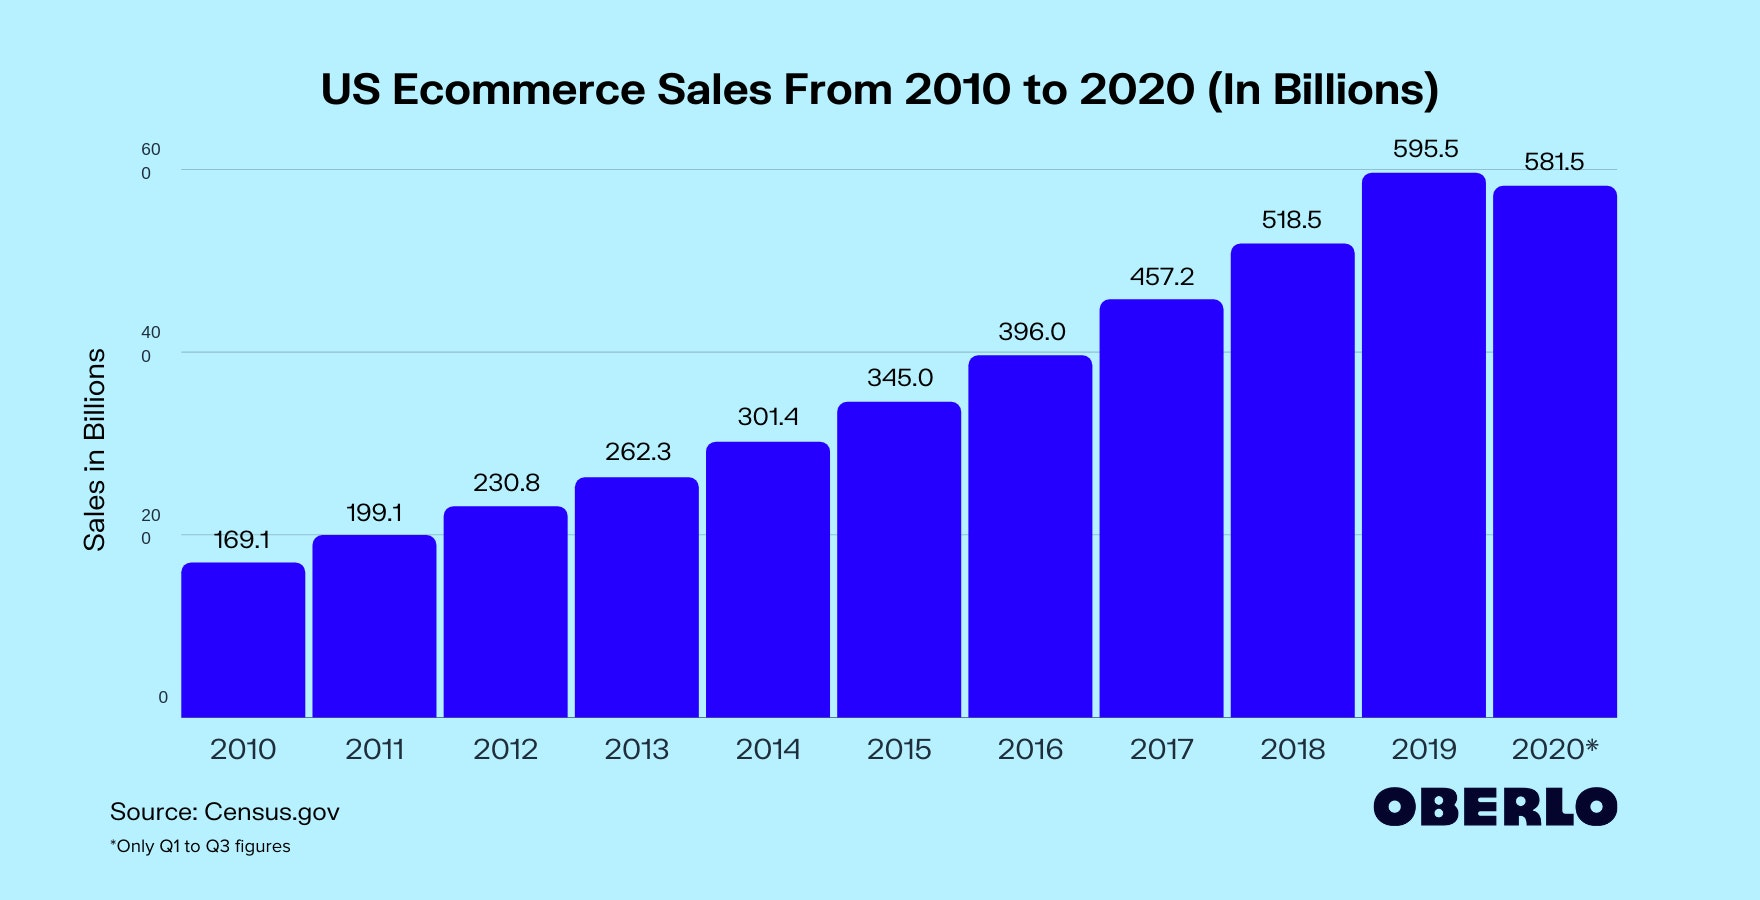 US Ecommerce Sales From 2010 to 2020 (In Billions)